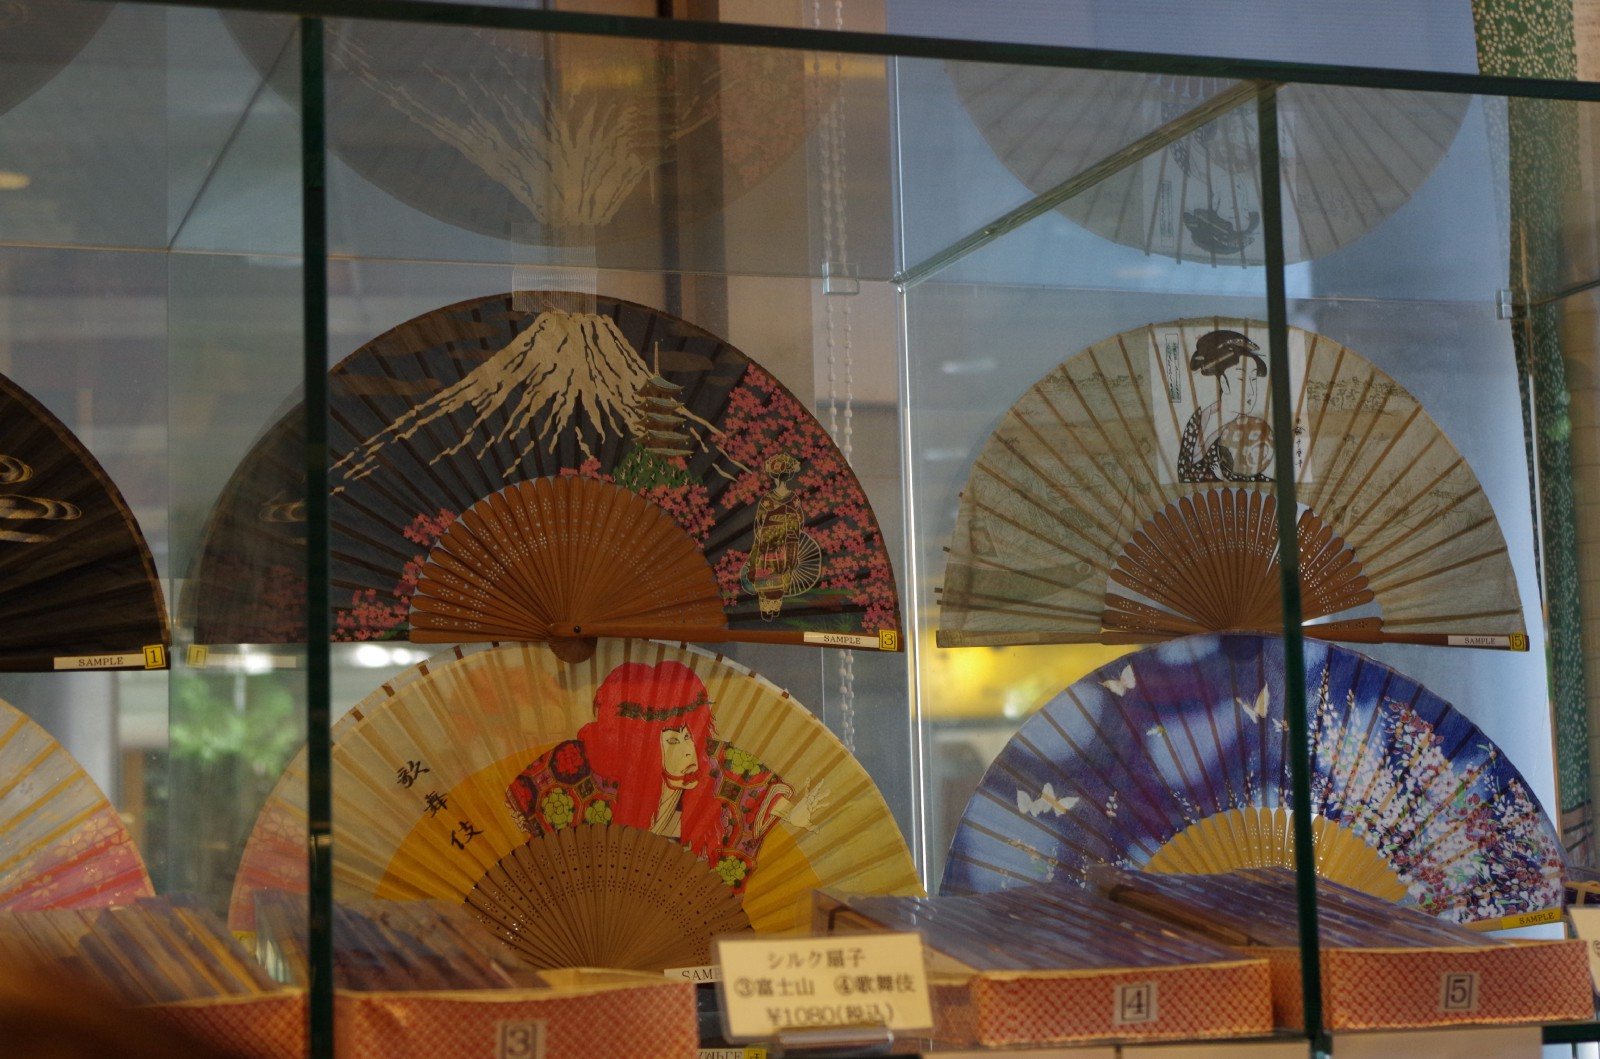 Souvenirs sold in Meiji Shrine